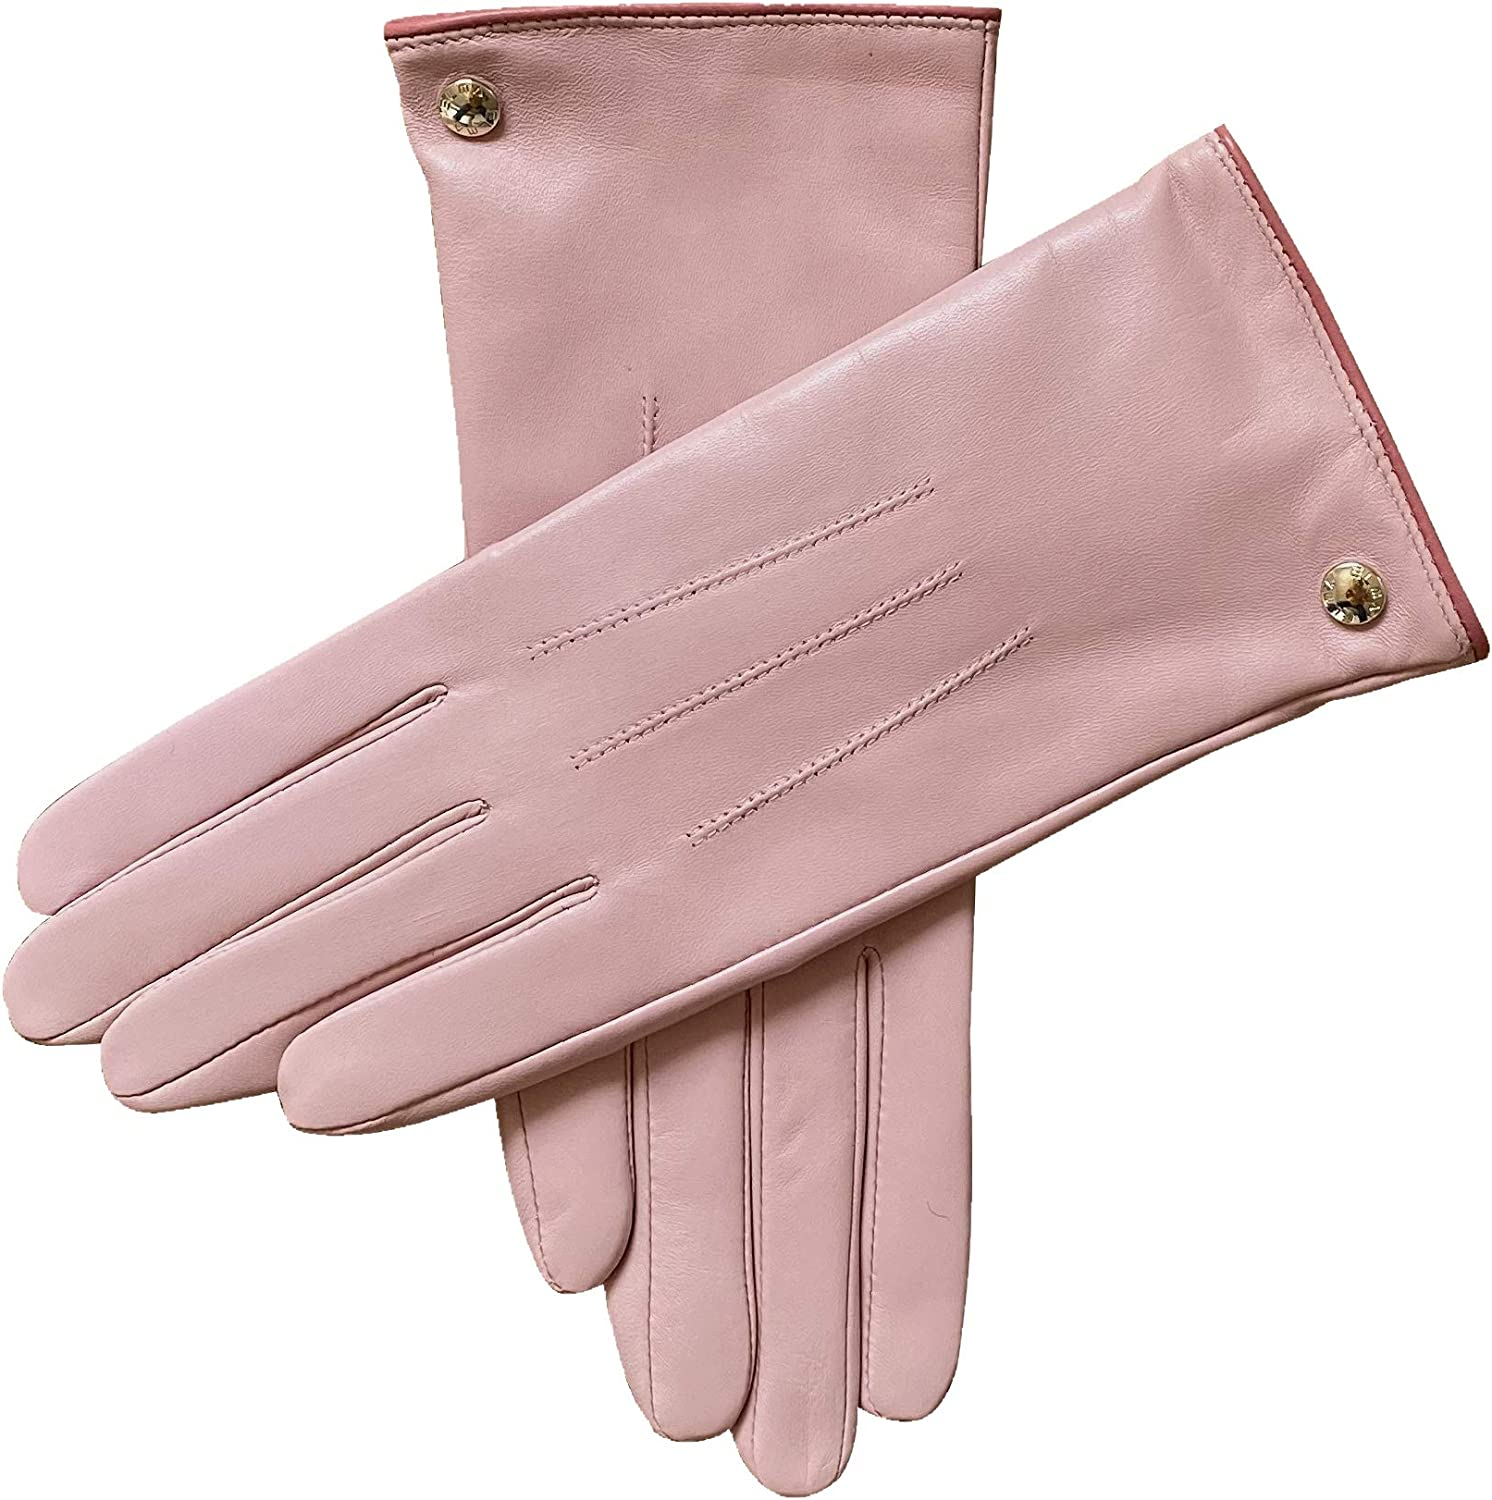 Elma Womens Classic Touchscreen Texting Winter Warm Driving Hairsheep Leather Gloves 100/% Pure Cashmere Lined